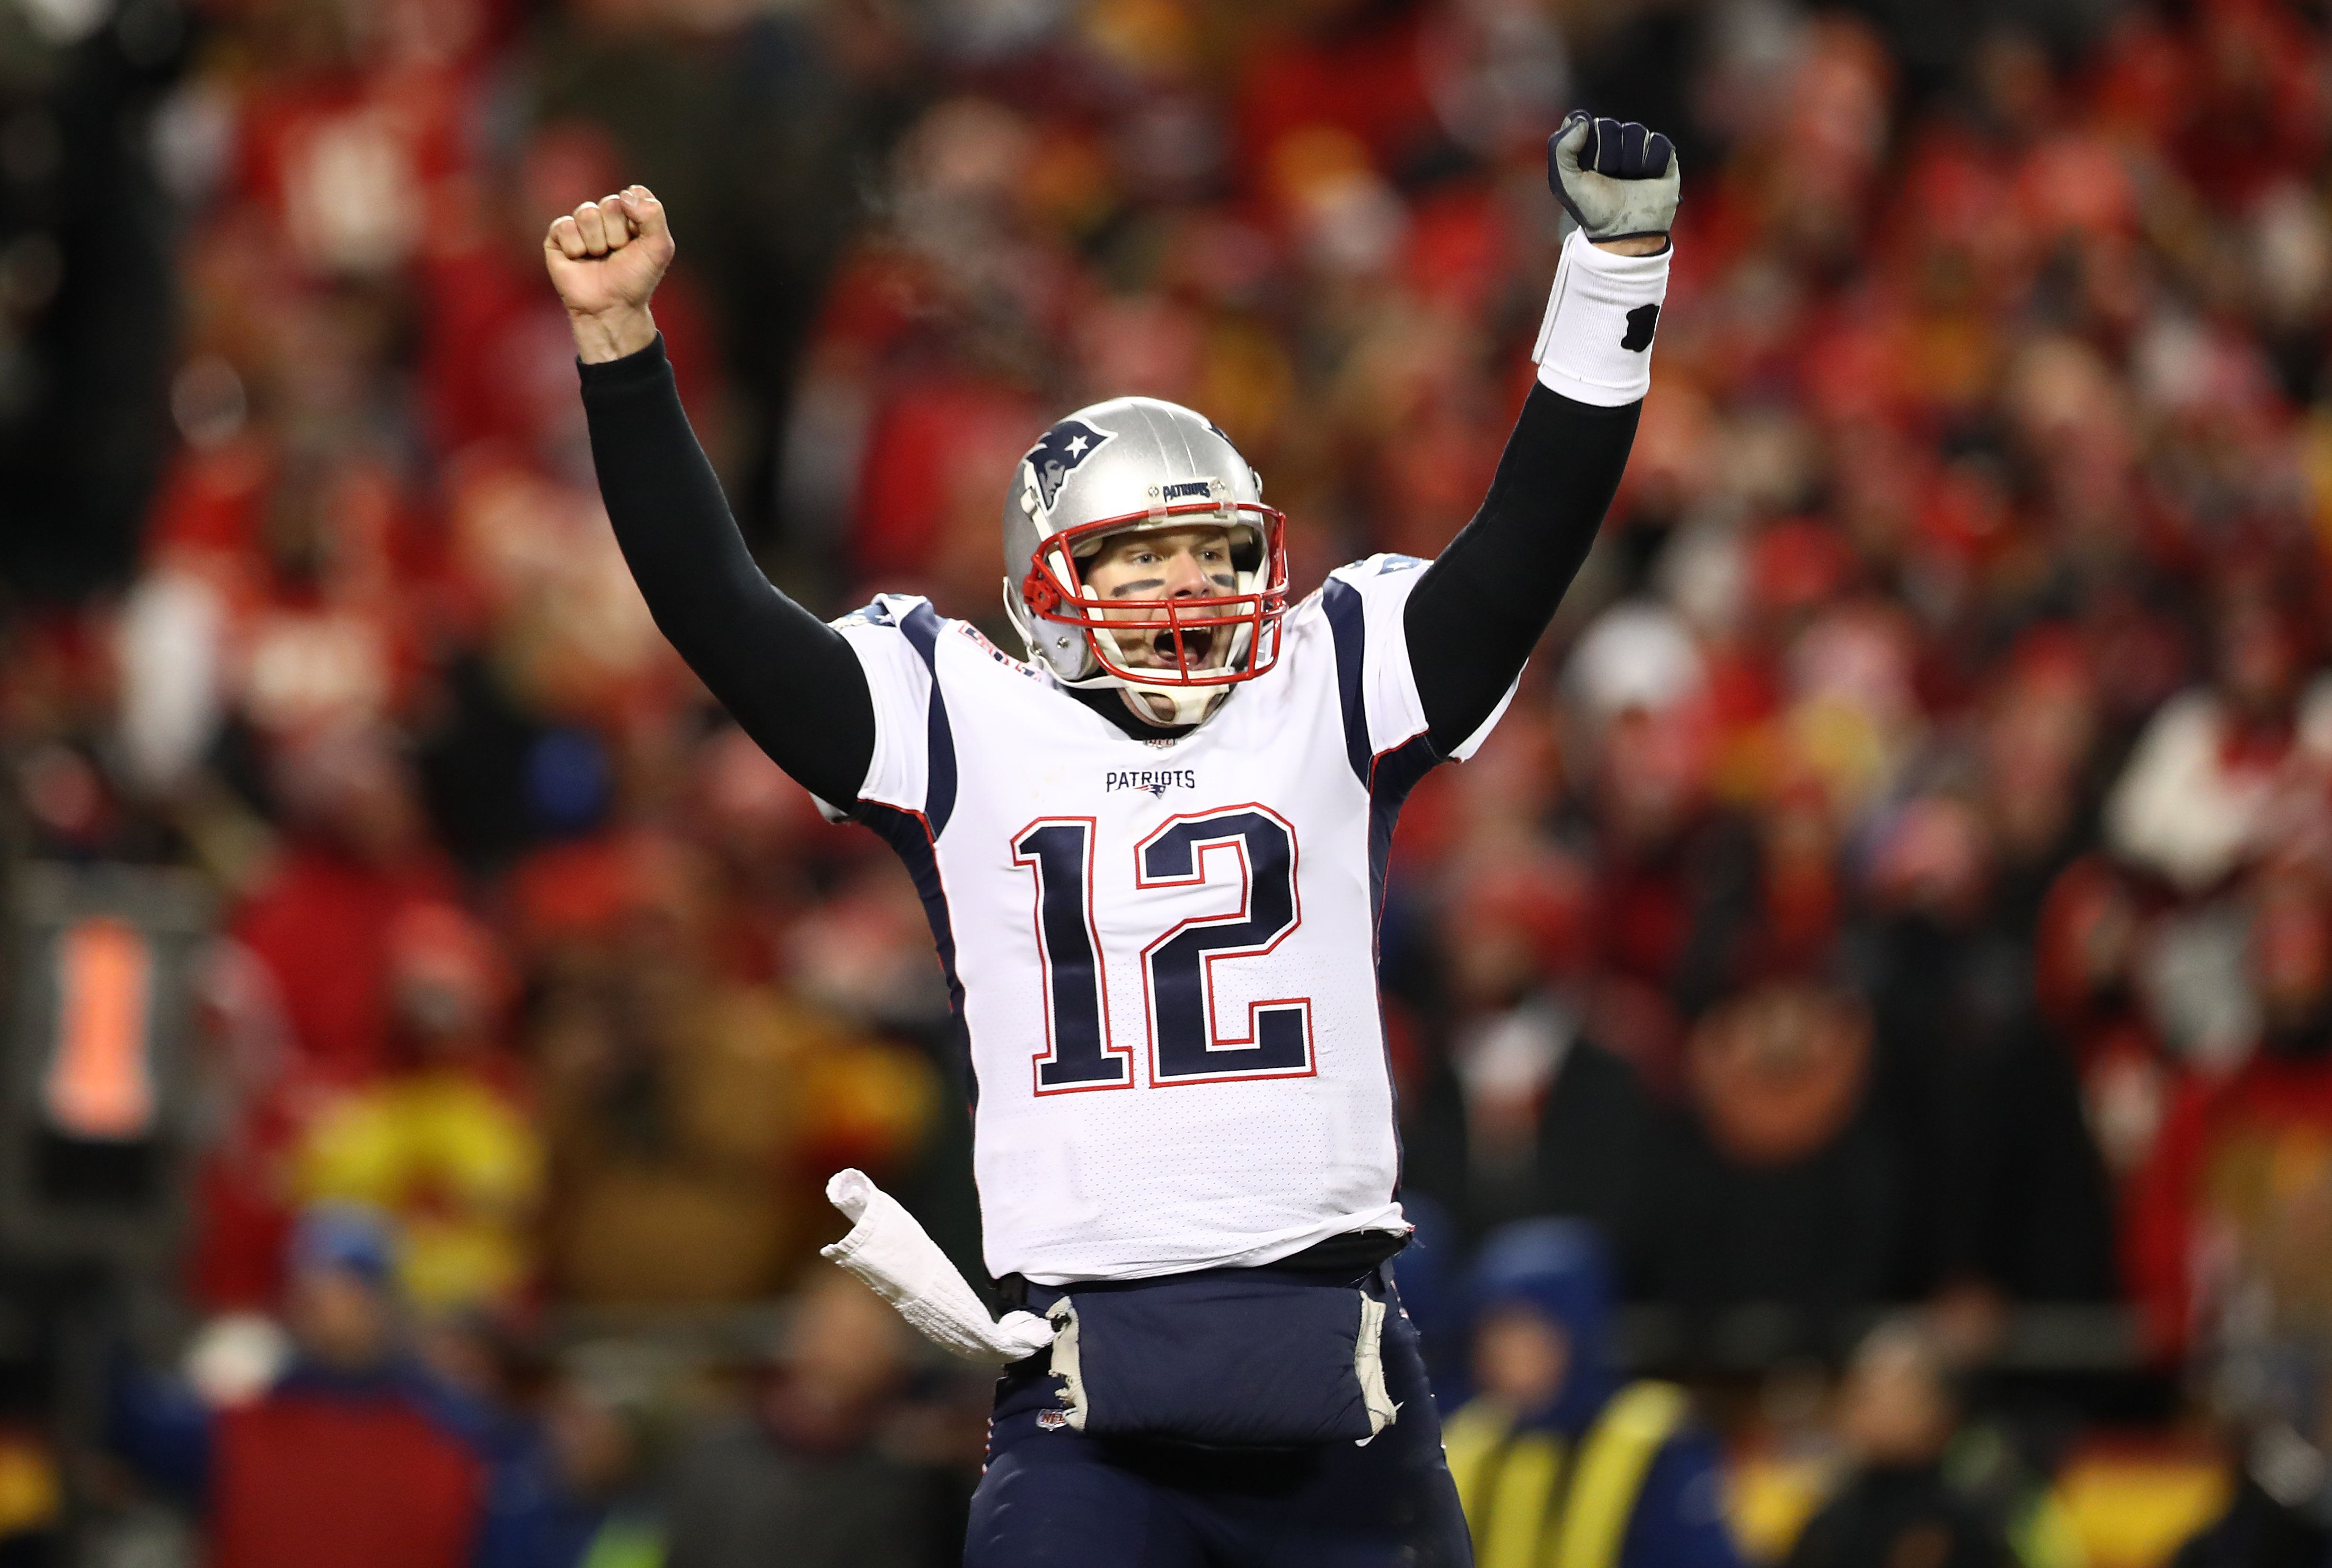 KANSAS CITY, MISSOURI - JANUARY 20: Tom Brady #12 of the New England Patriots celebrates after defeating the Kansas City Chiefs in overtime during the AFC Championship Game at Arrowhead Stadium on January 20, 2019 in Kansas City, Missouri. The Patriots defeated the Chiefs 37-31. (Photo by Ronald Martinez/Getty Images)